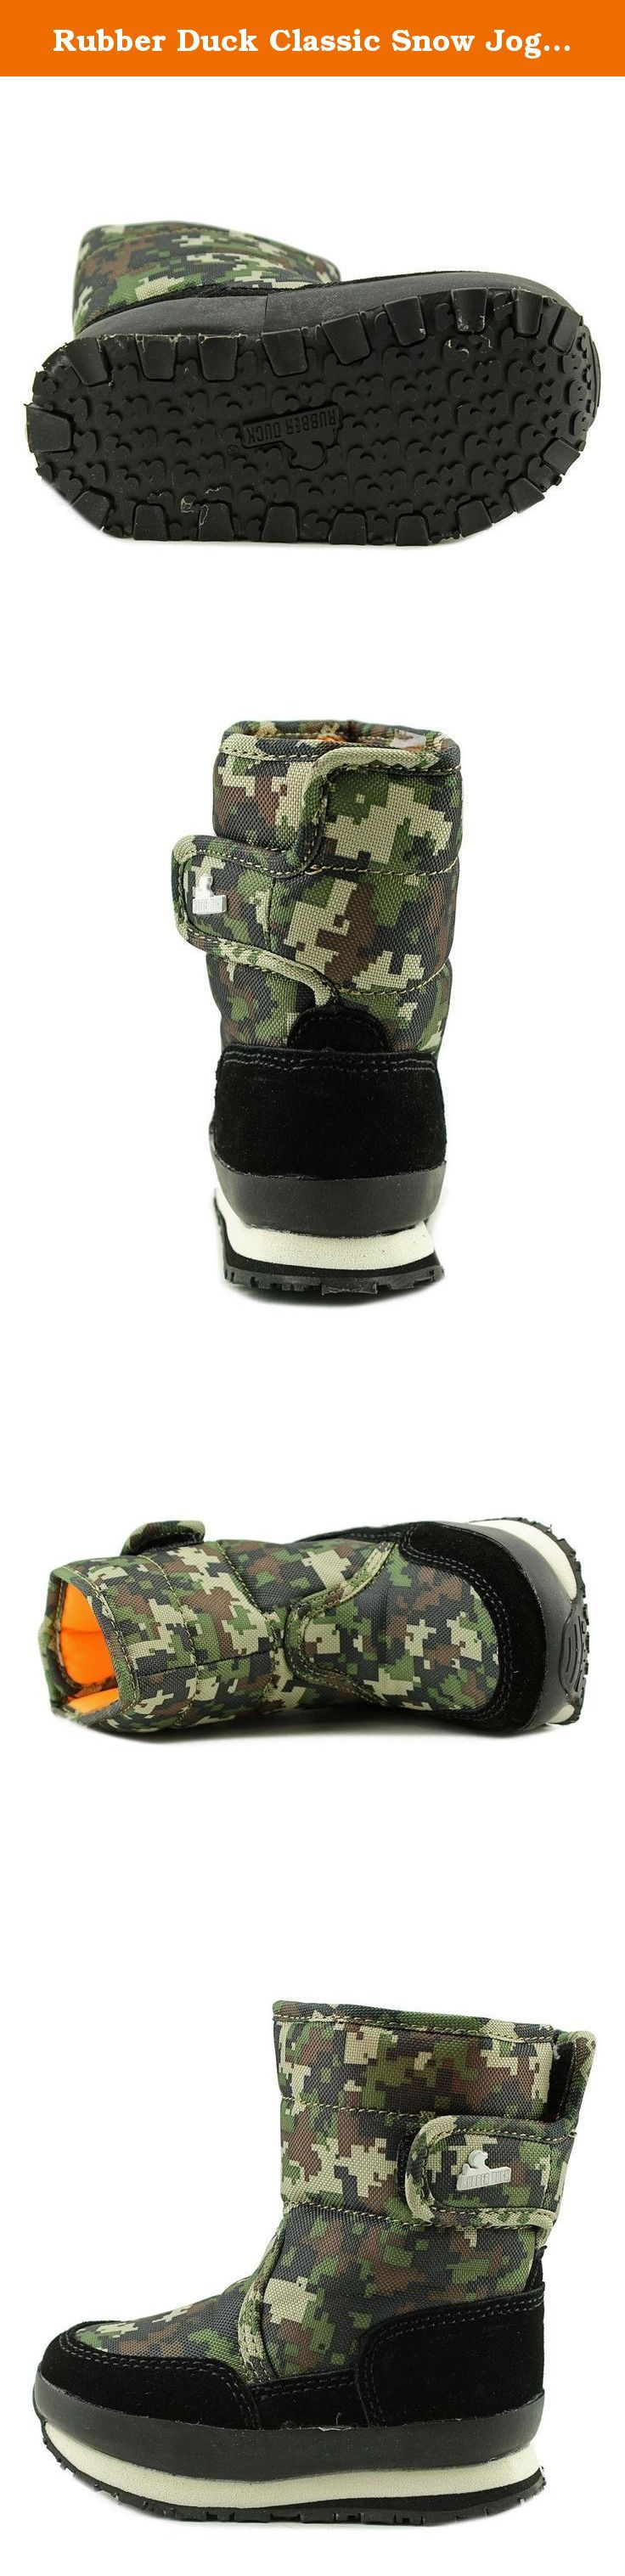 Rubber Duck Classic Snow Joggers Boots (Toddler/Little Kid/Big Kid), Camo Print, 27 BR(10 M US Toddler). Fashionable Winter Boot.